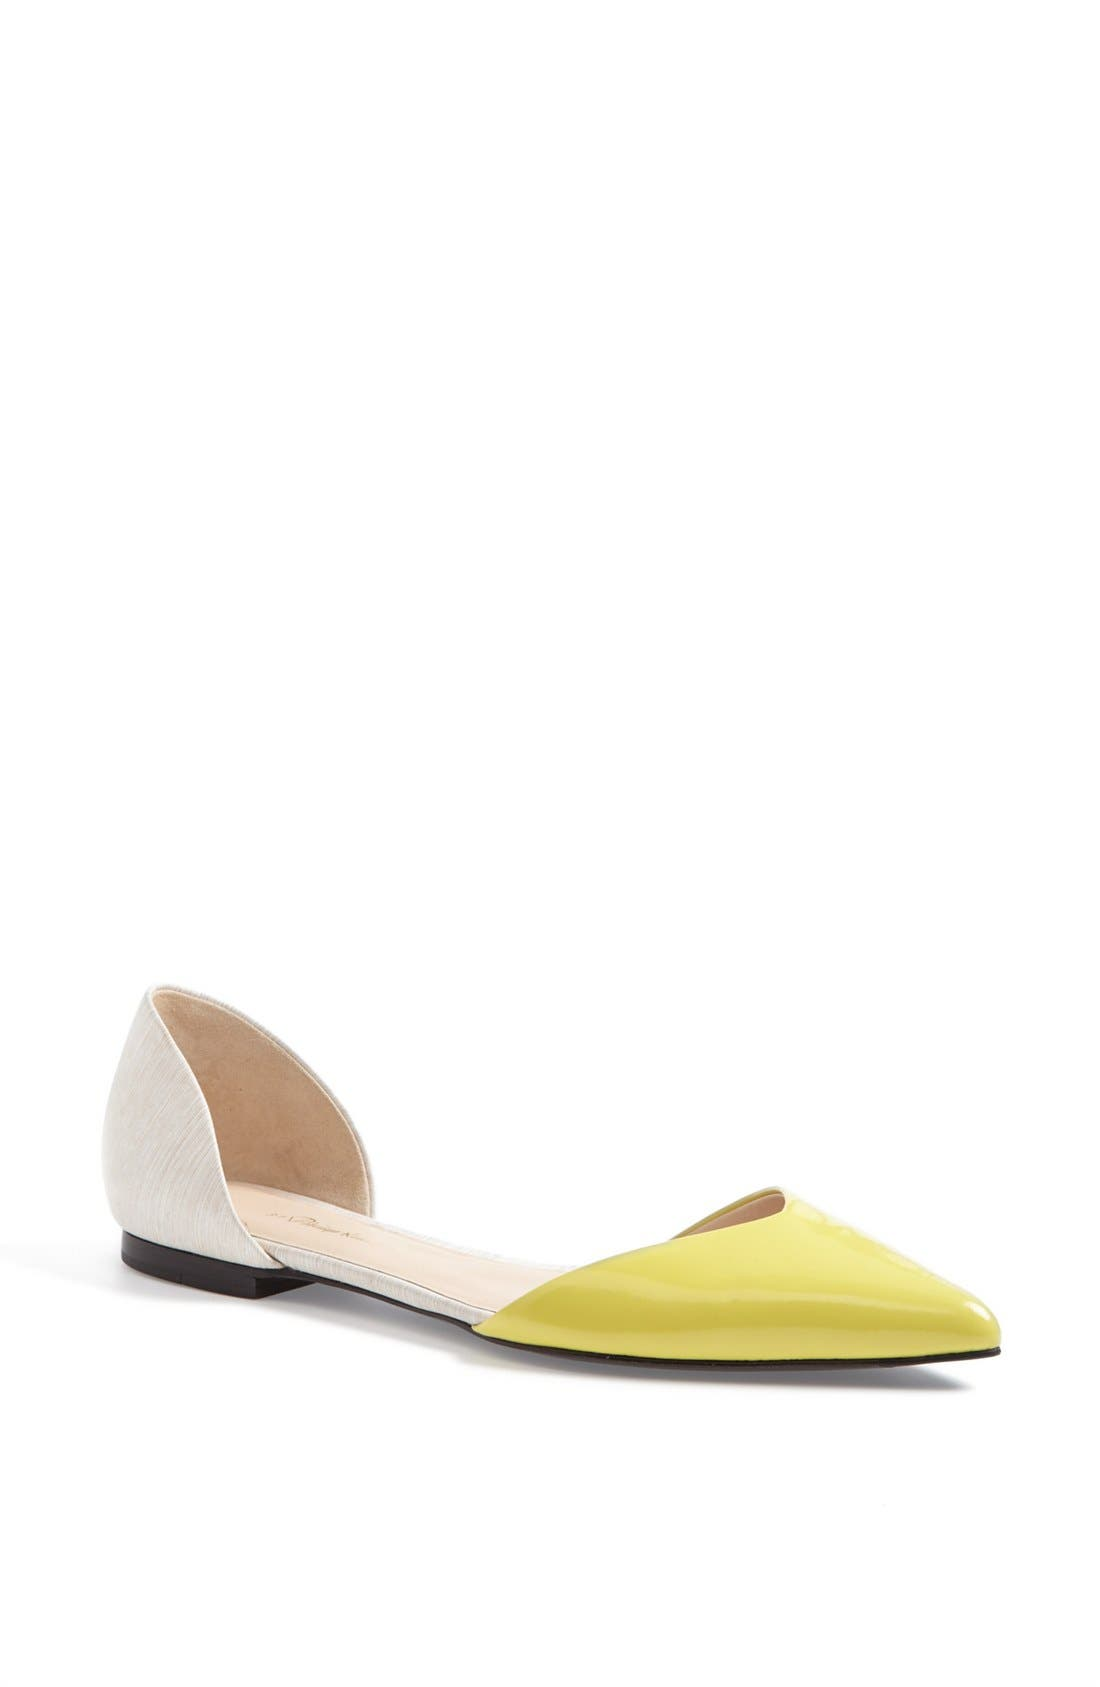 Alternate Image 1 Selected - 3.1 Phillip Lim 'Devon' Flat